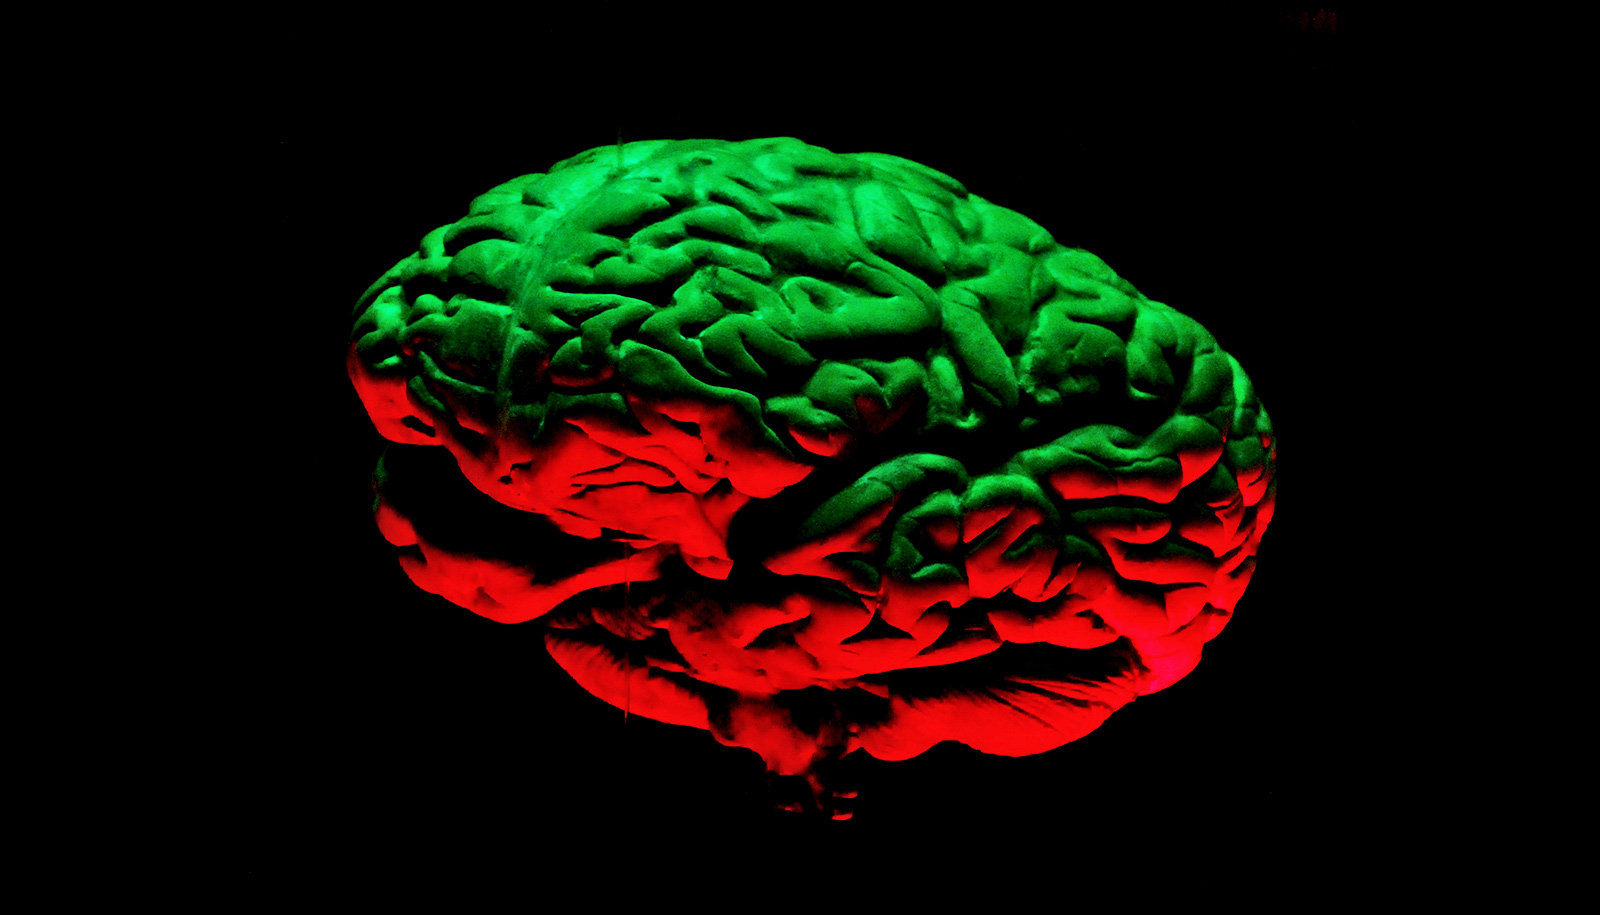 Gel regrows mouse neurons after brain-damaging strokes